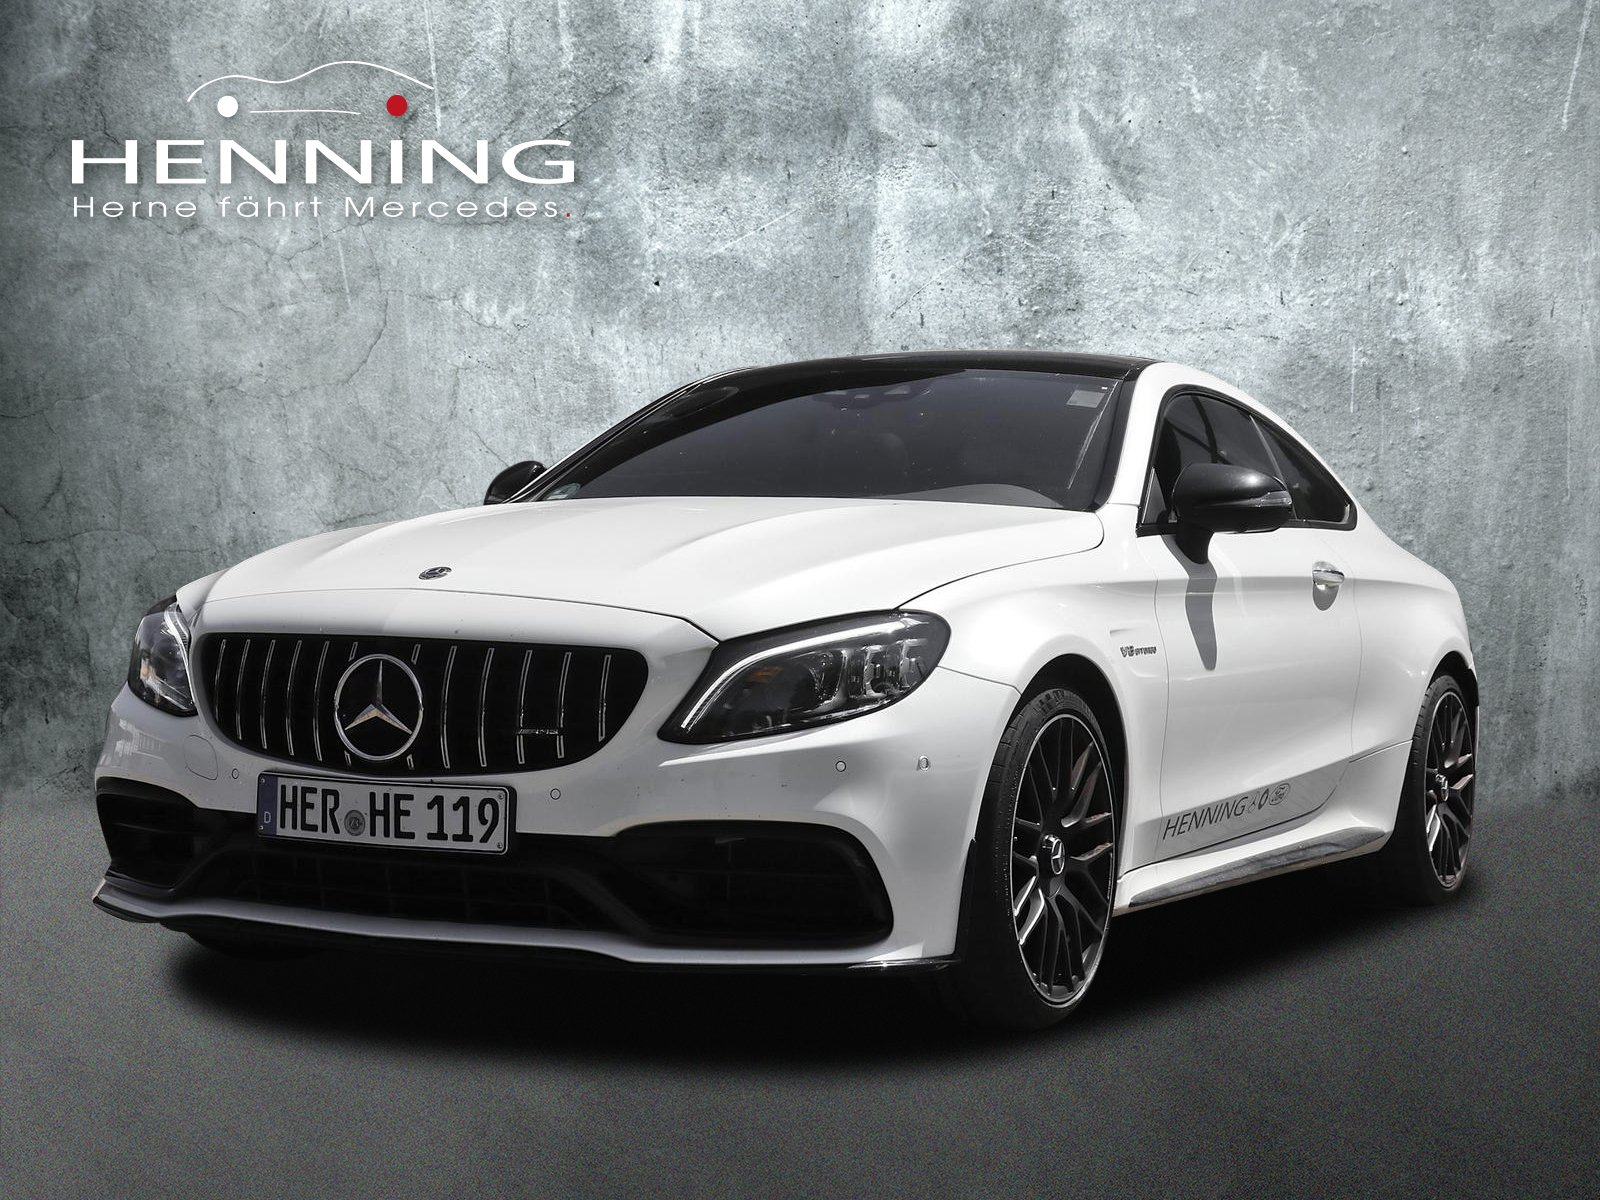 MERCEDES-BENZ Mercedes-AMG C 63 Coupe